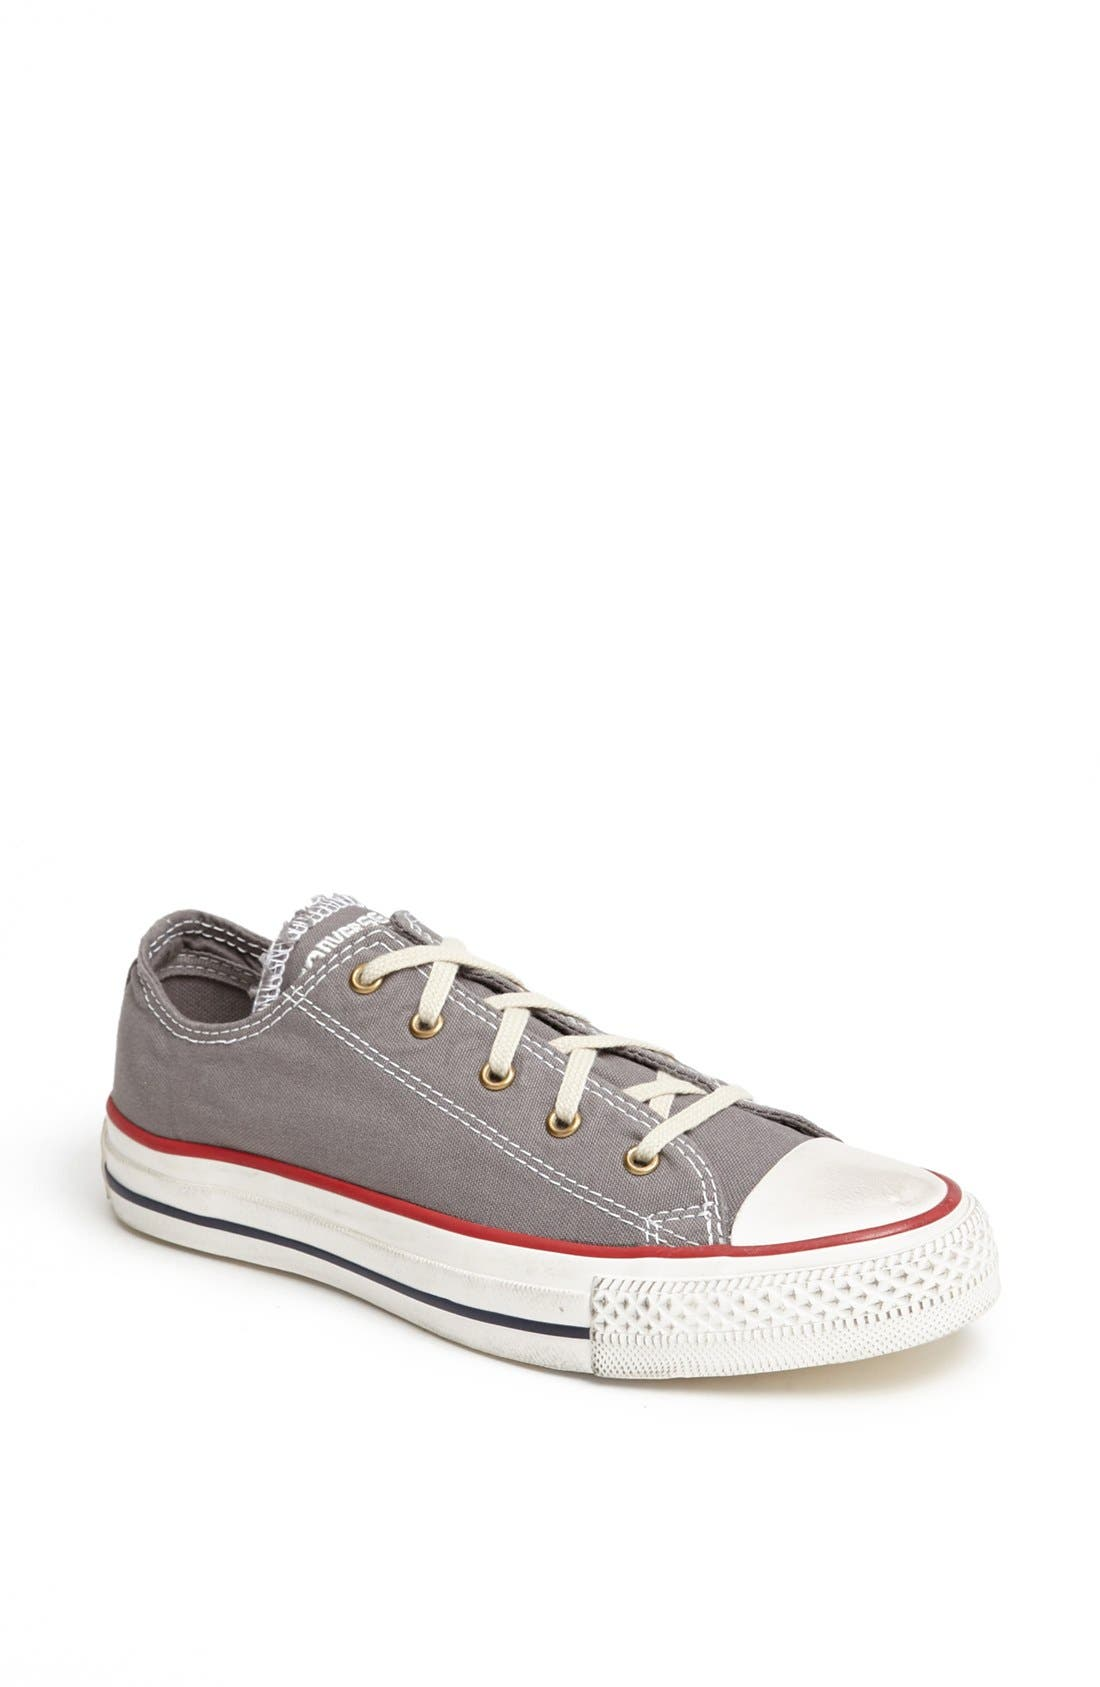 Alternate Image 1 Selected - Converse Chuck Taylor® All Star® 'Washed' Sneaker (Women)